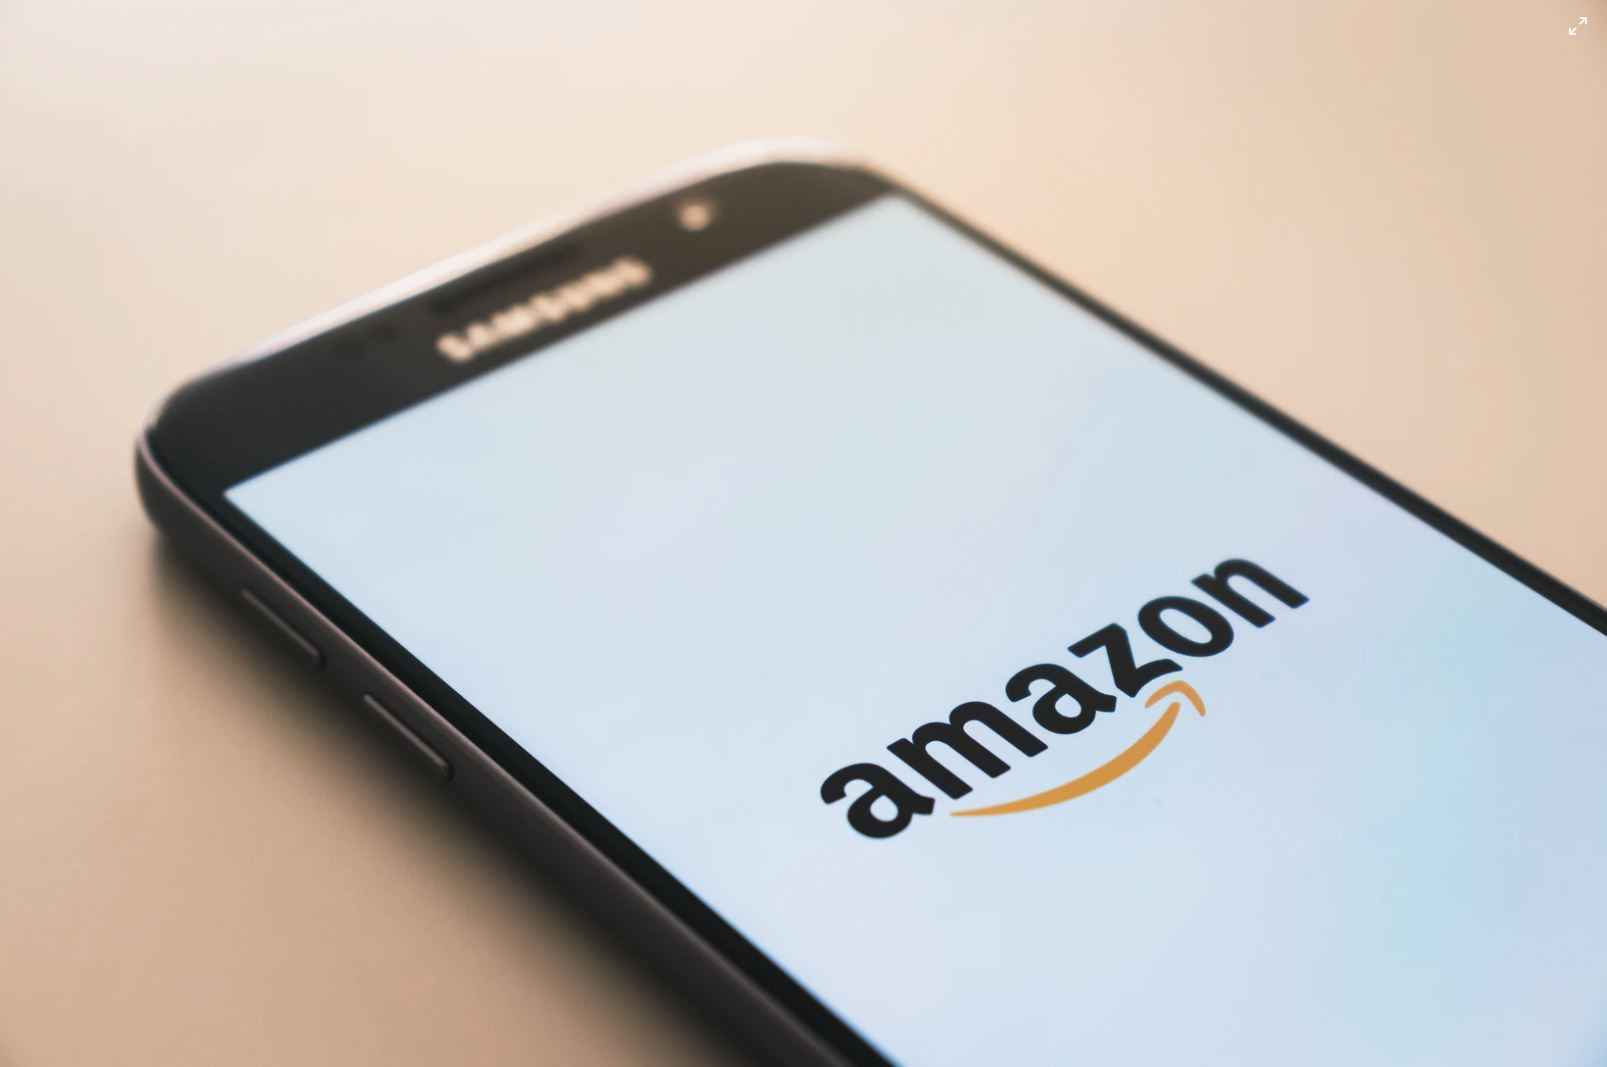 Amazon will be launching its Easter deals soon